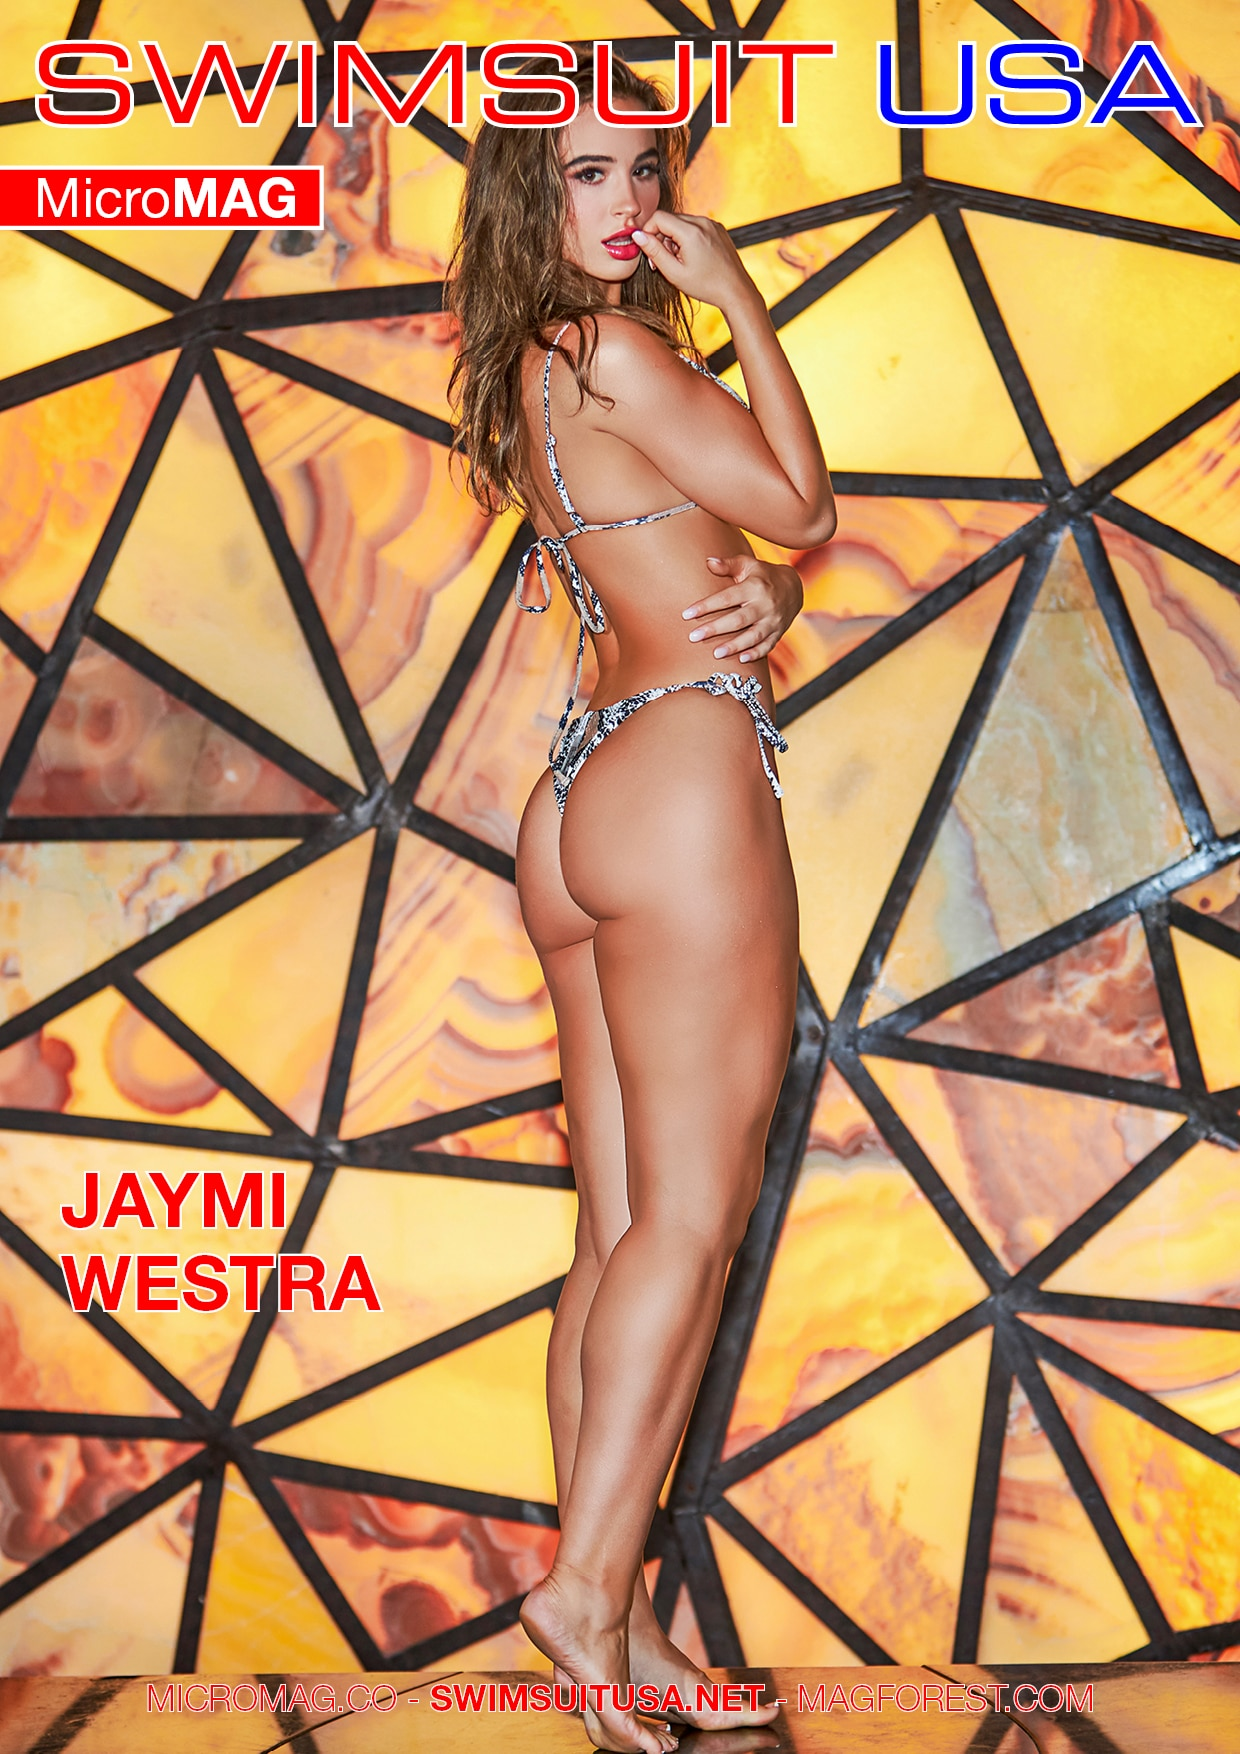 Swimsuit USA MicroMAG - Jaymi Westra - Issue 3 2